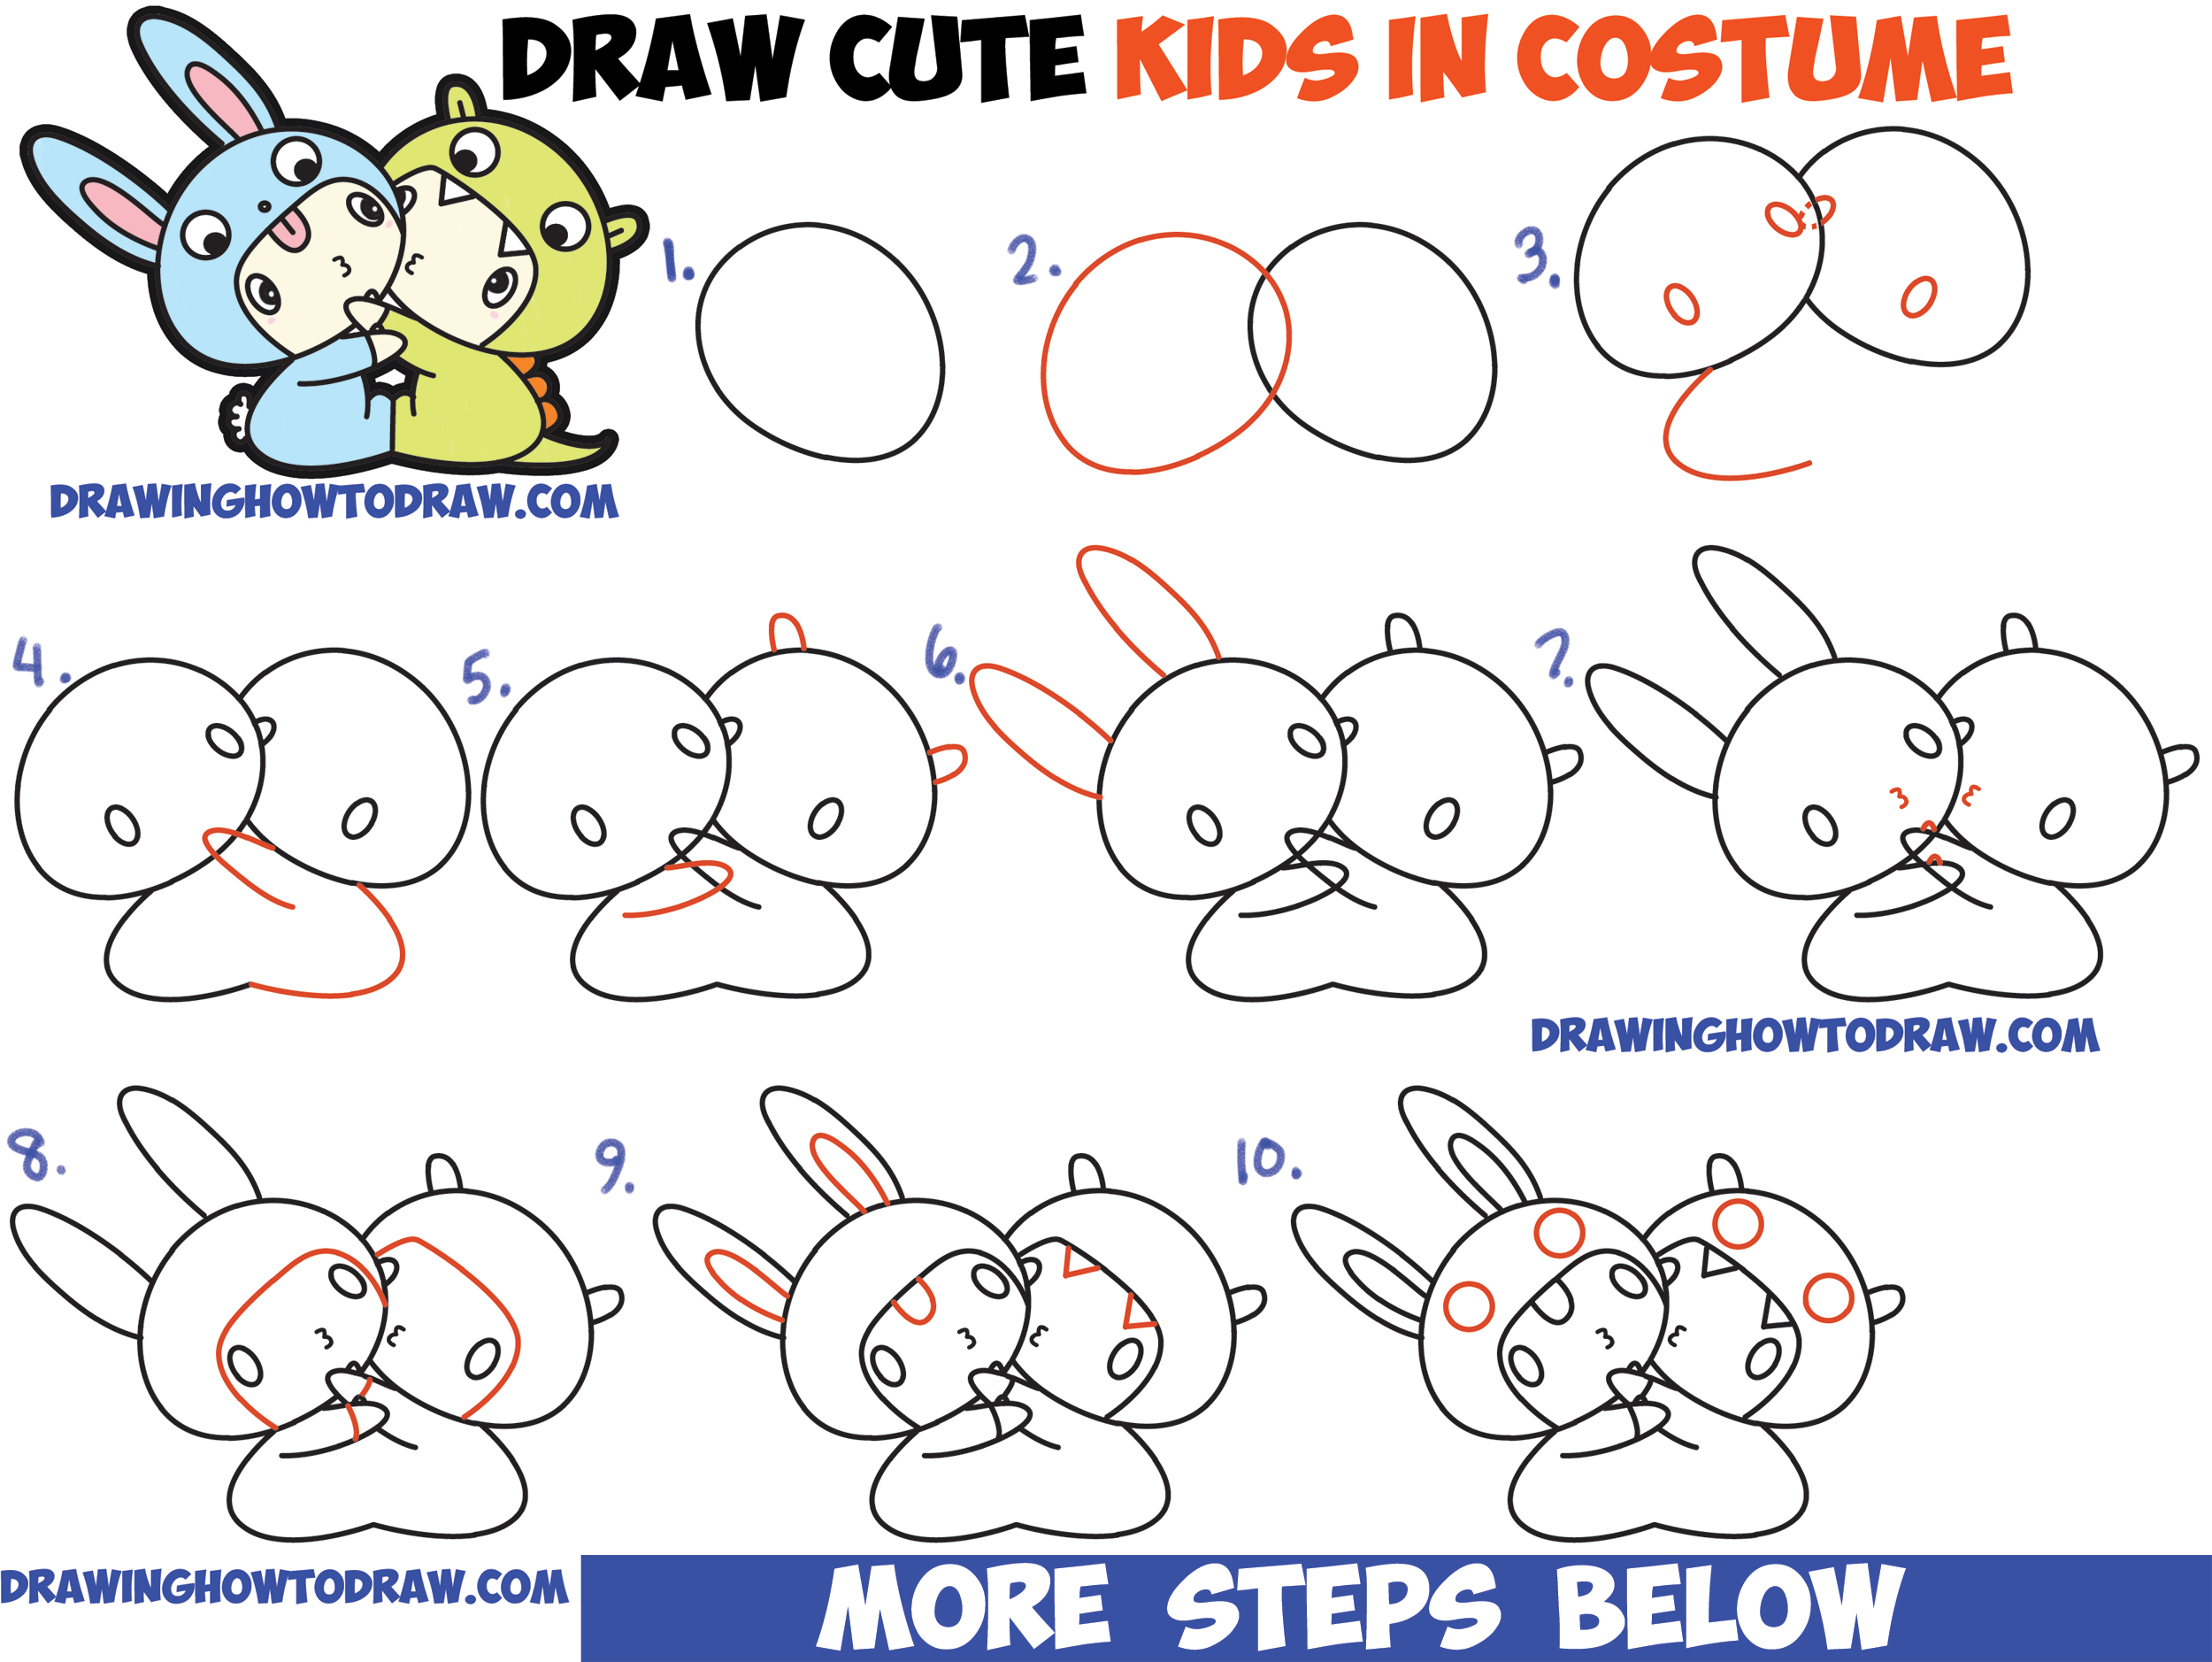 Chibi Kids Dressed Up In Costumes With Hoods Dragon Chibi Kids Dressed Up  In Costumes With Lion How To Draw A Lion Easy Step